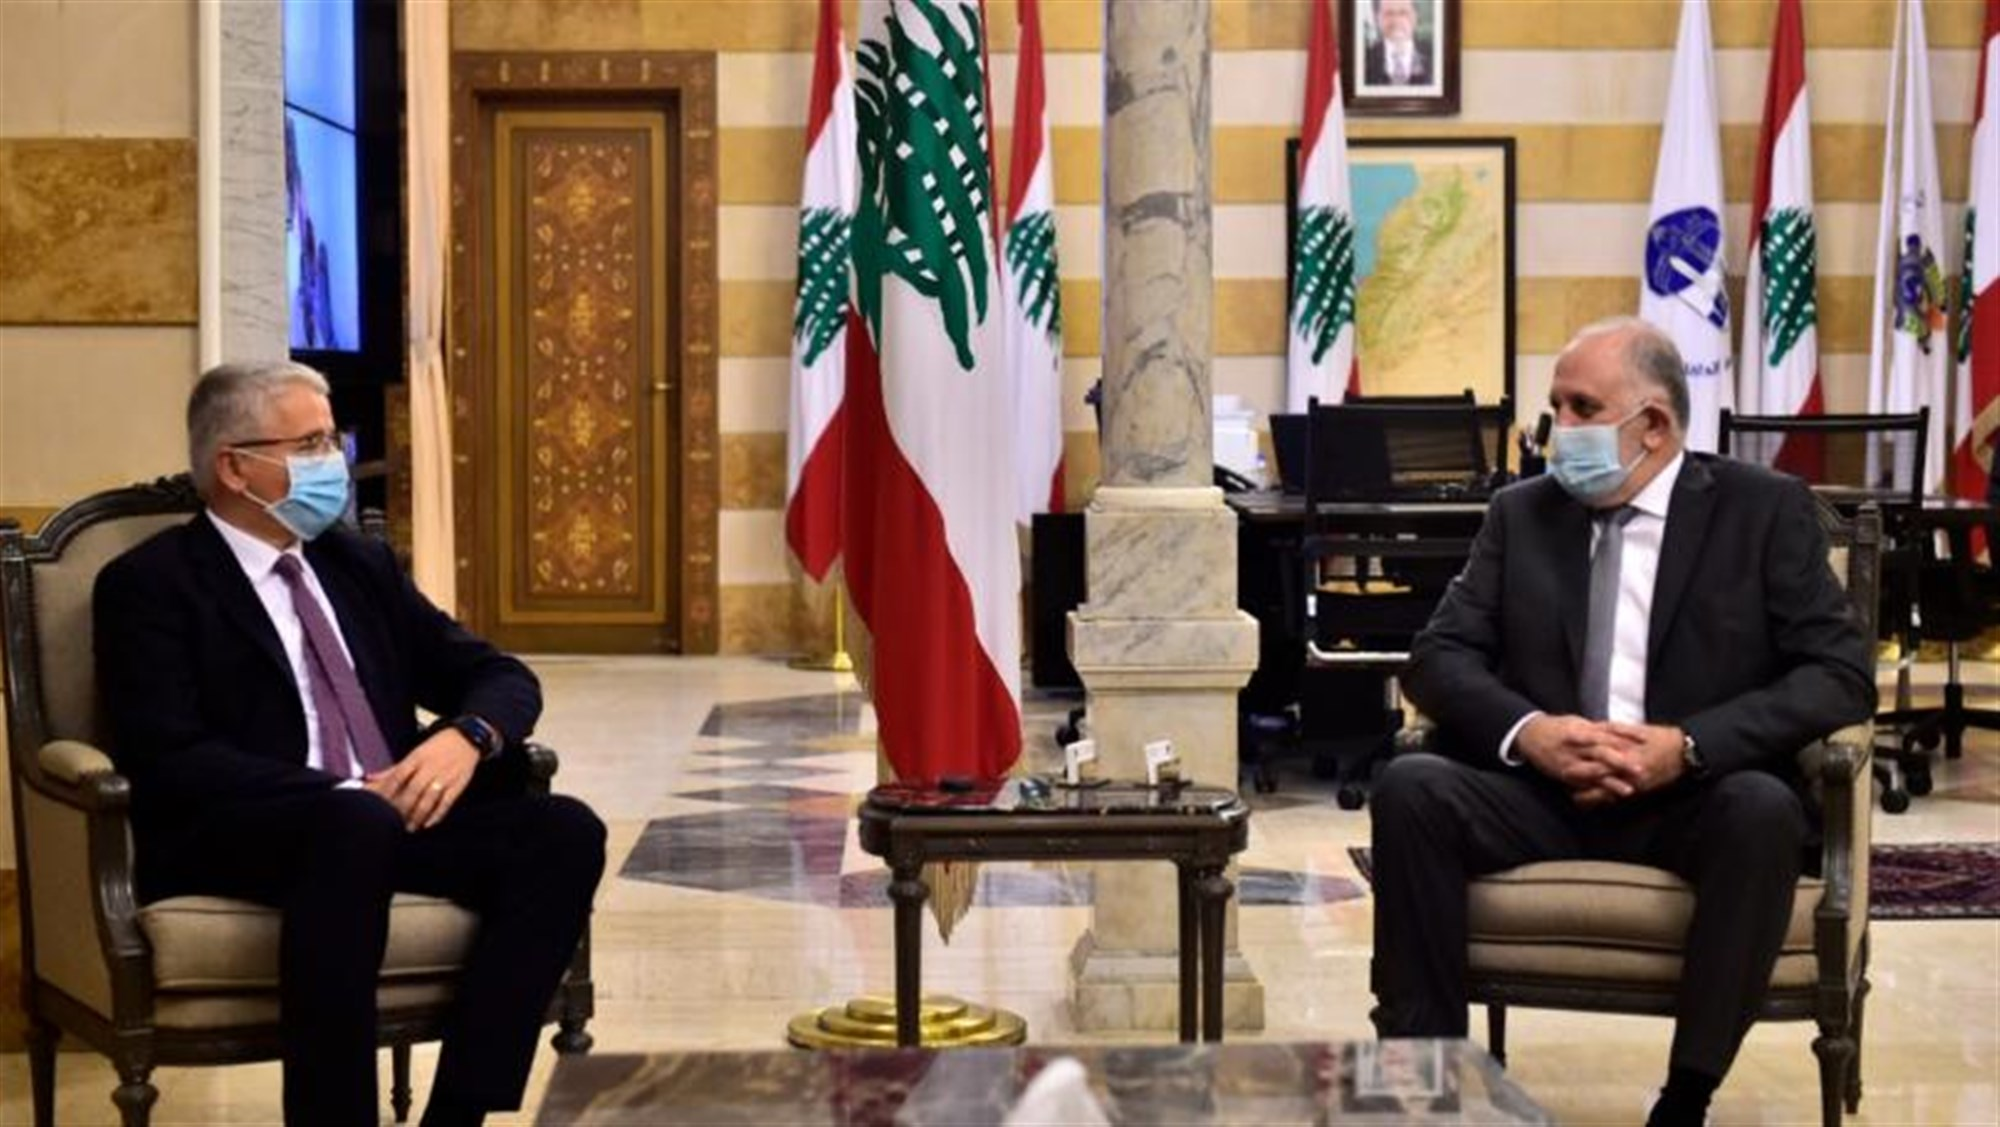 Minister of Interior Lobbying Lebanon for Help to Rescue Albanians Stuck in Syria Camp